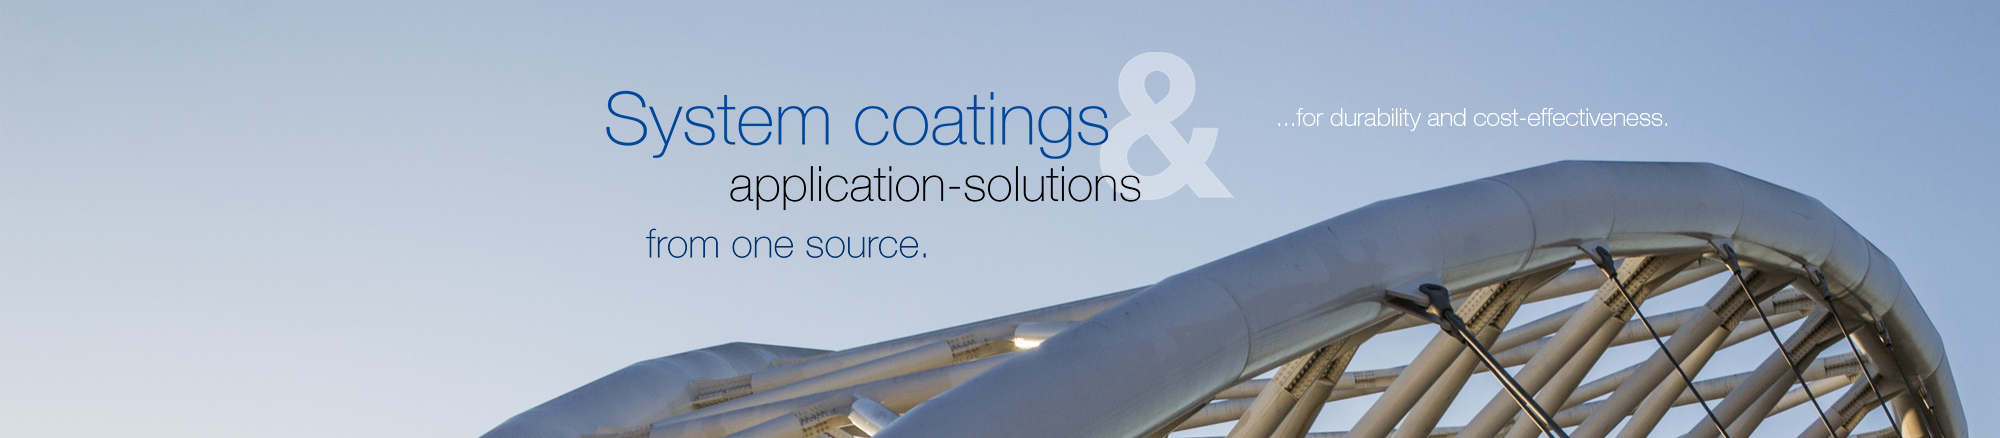 System coatings & application solutions from one source - for durability and cost-effectiveness